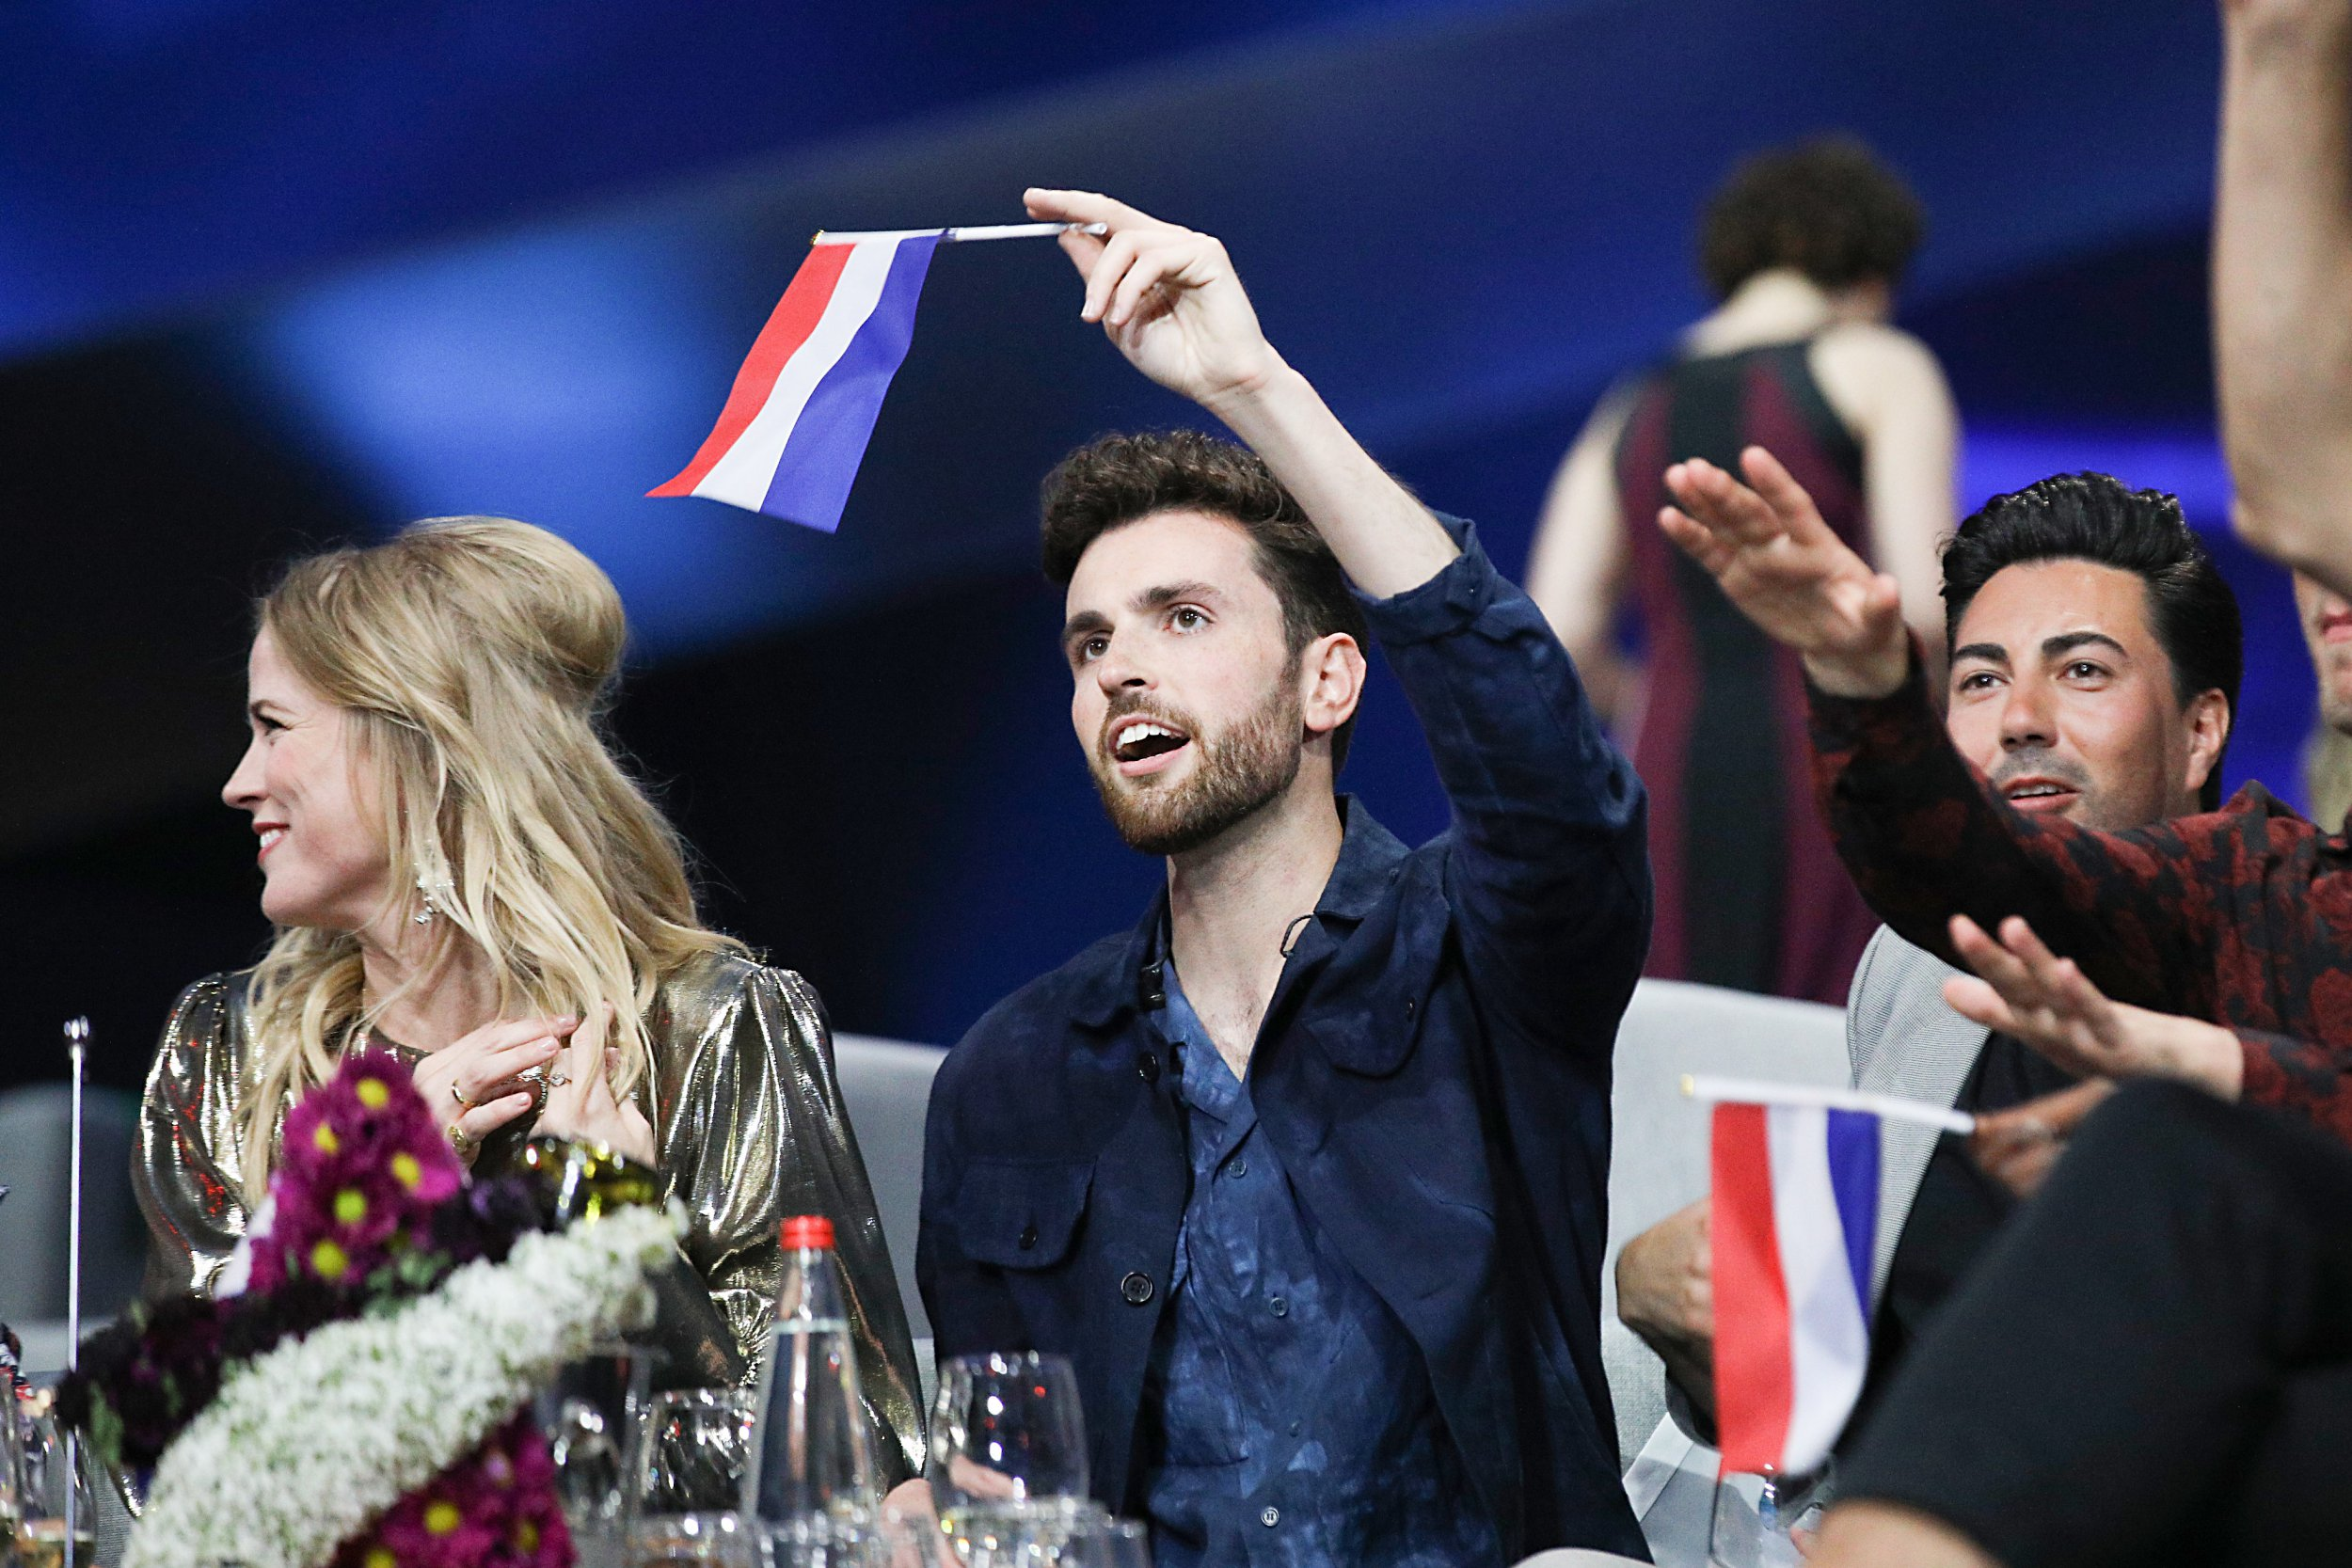 Where is Eurovision 2020 taking place?